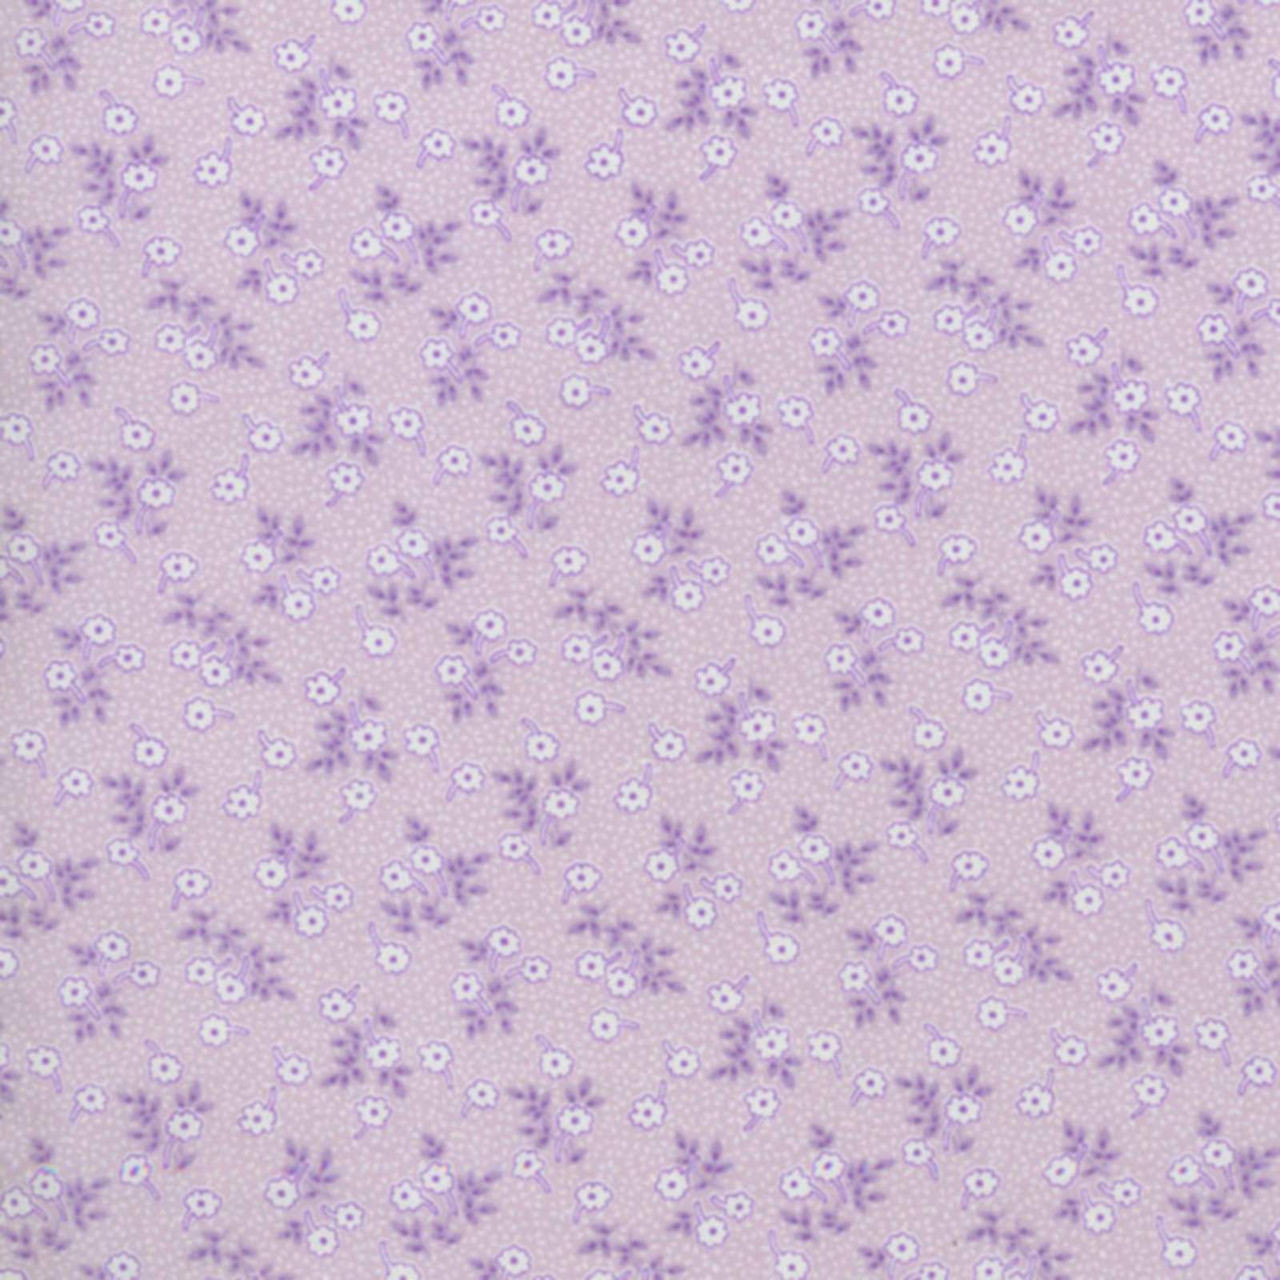 Small Dark Pink Outlined White Flowers On Pink 1586 1 Everything